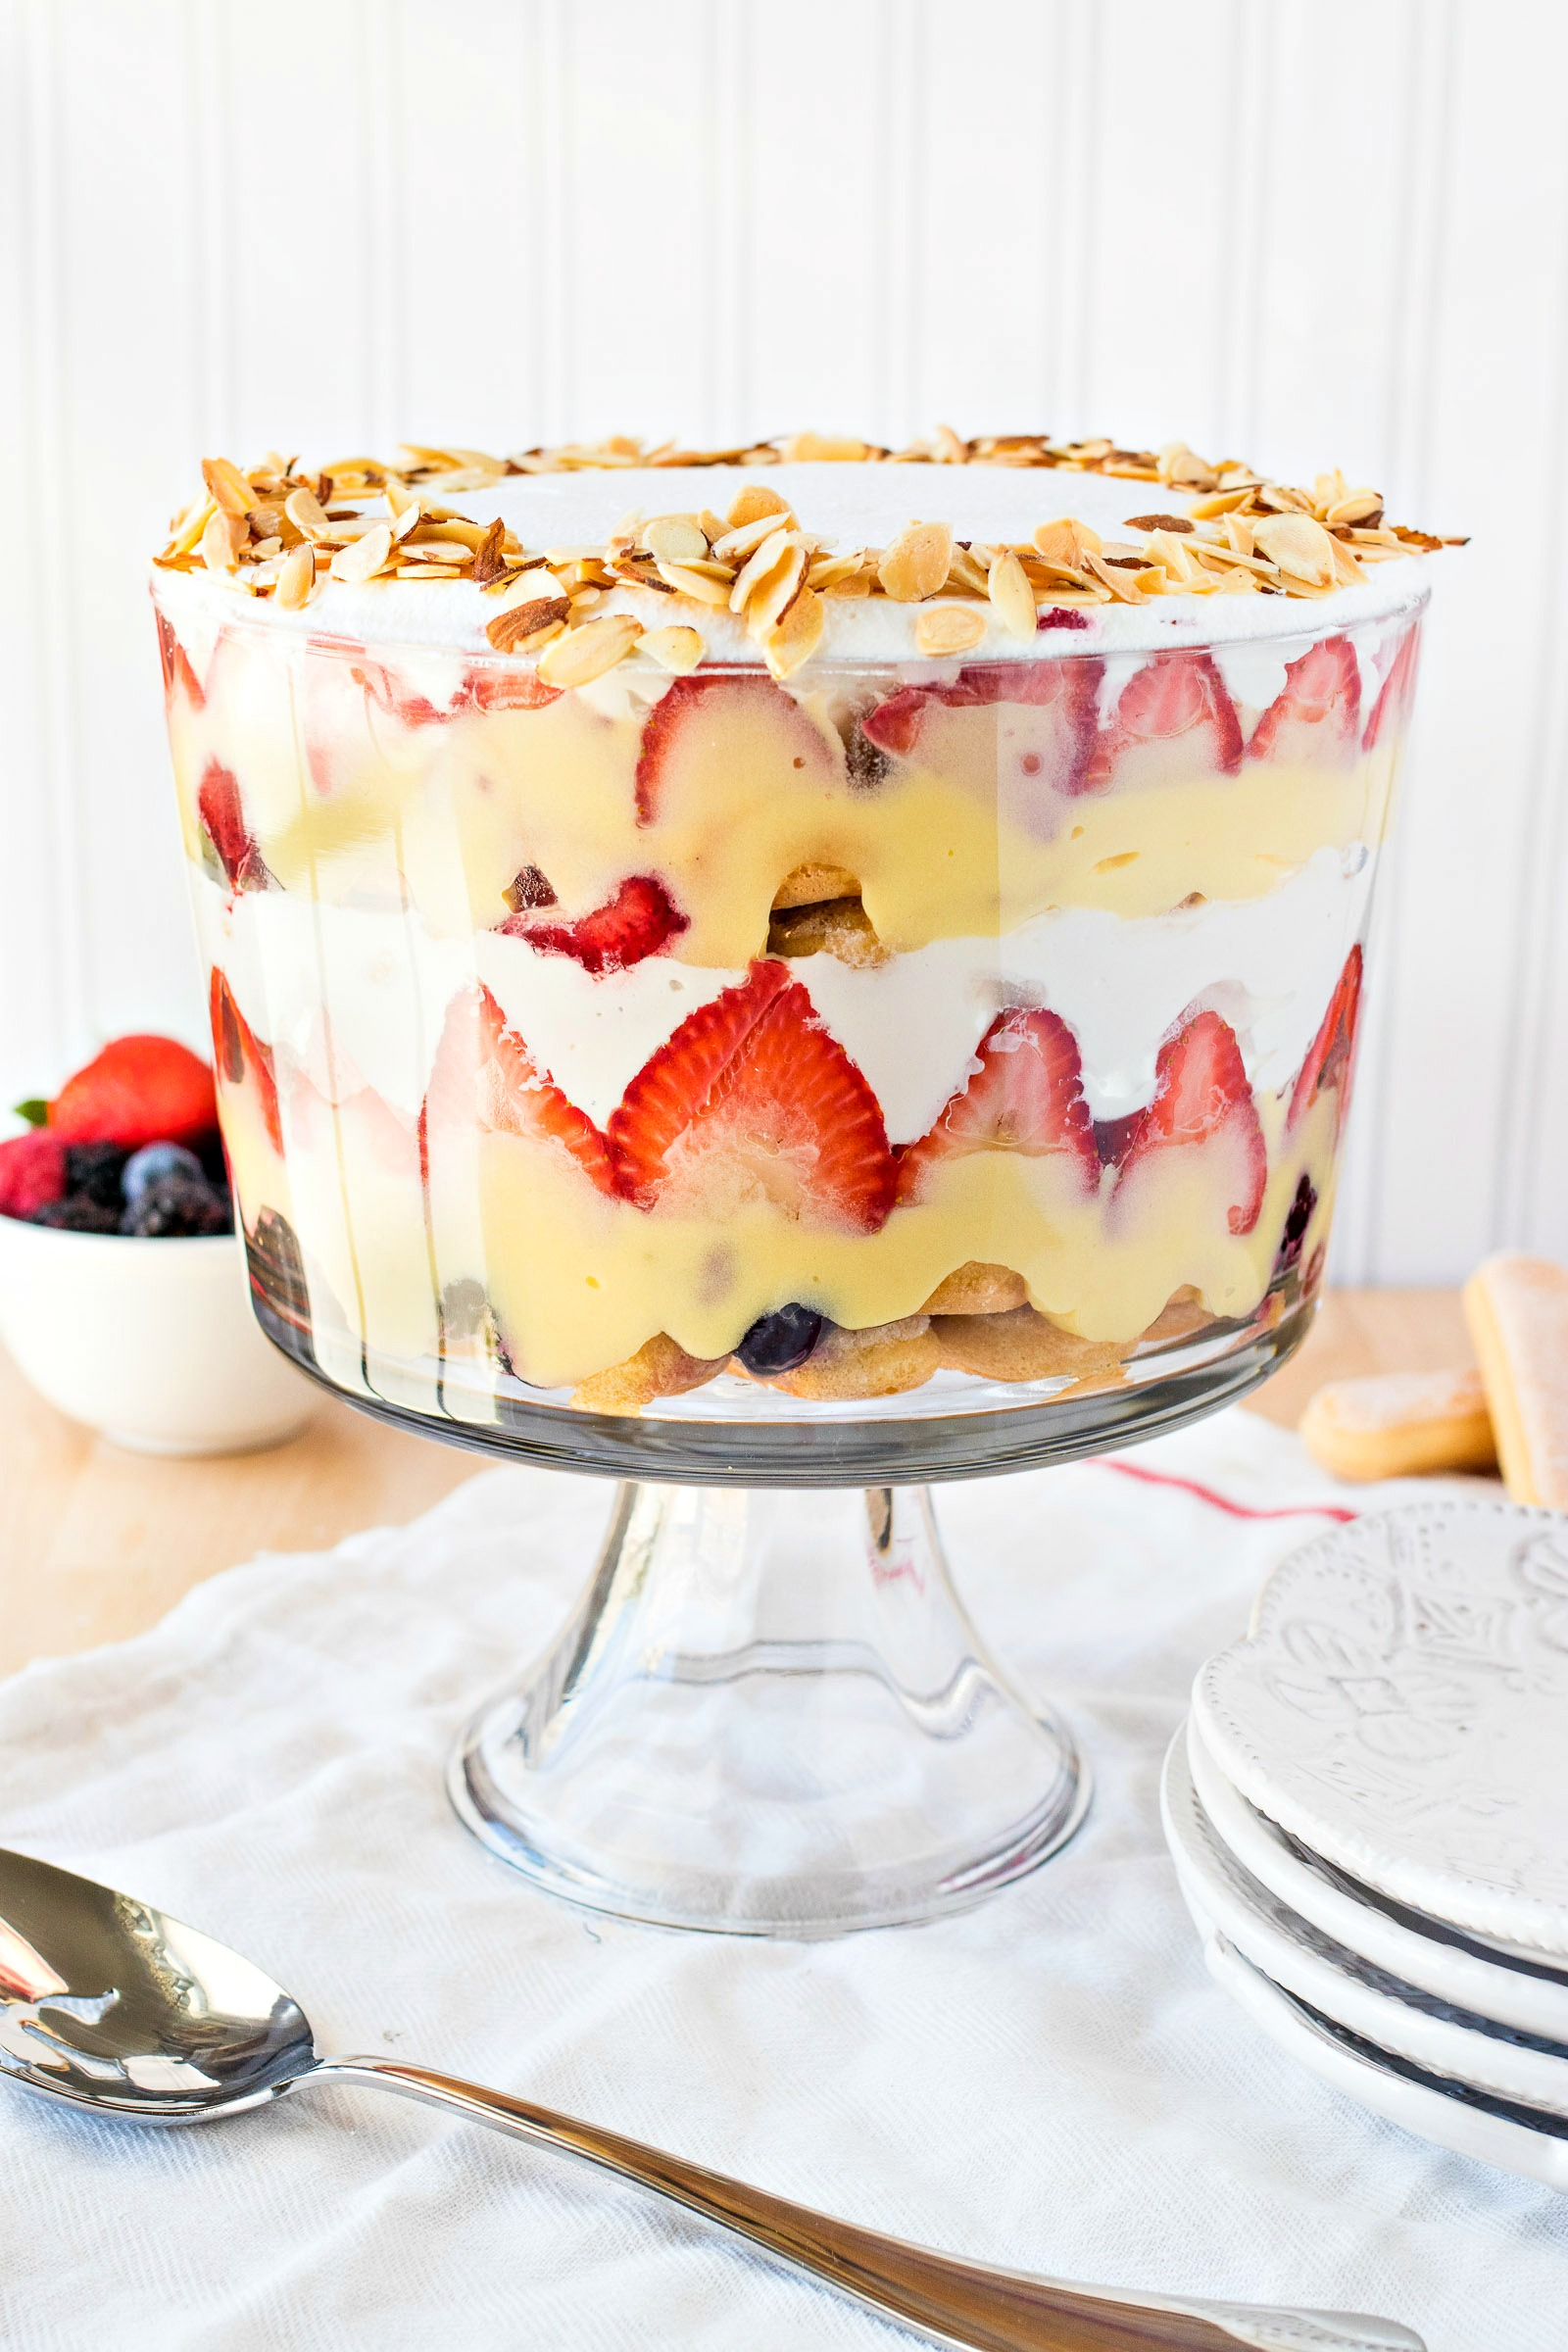 Forum on this topic: Summer Sherry Trifle Recipe, summer-sherry-trifle-recipe/